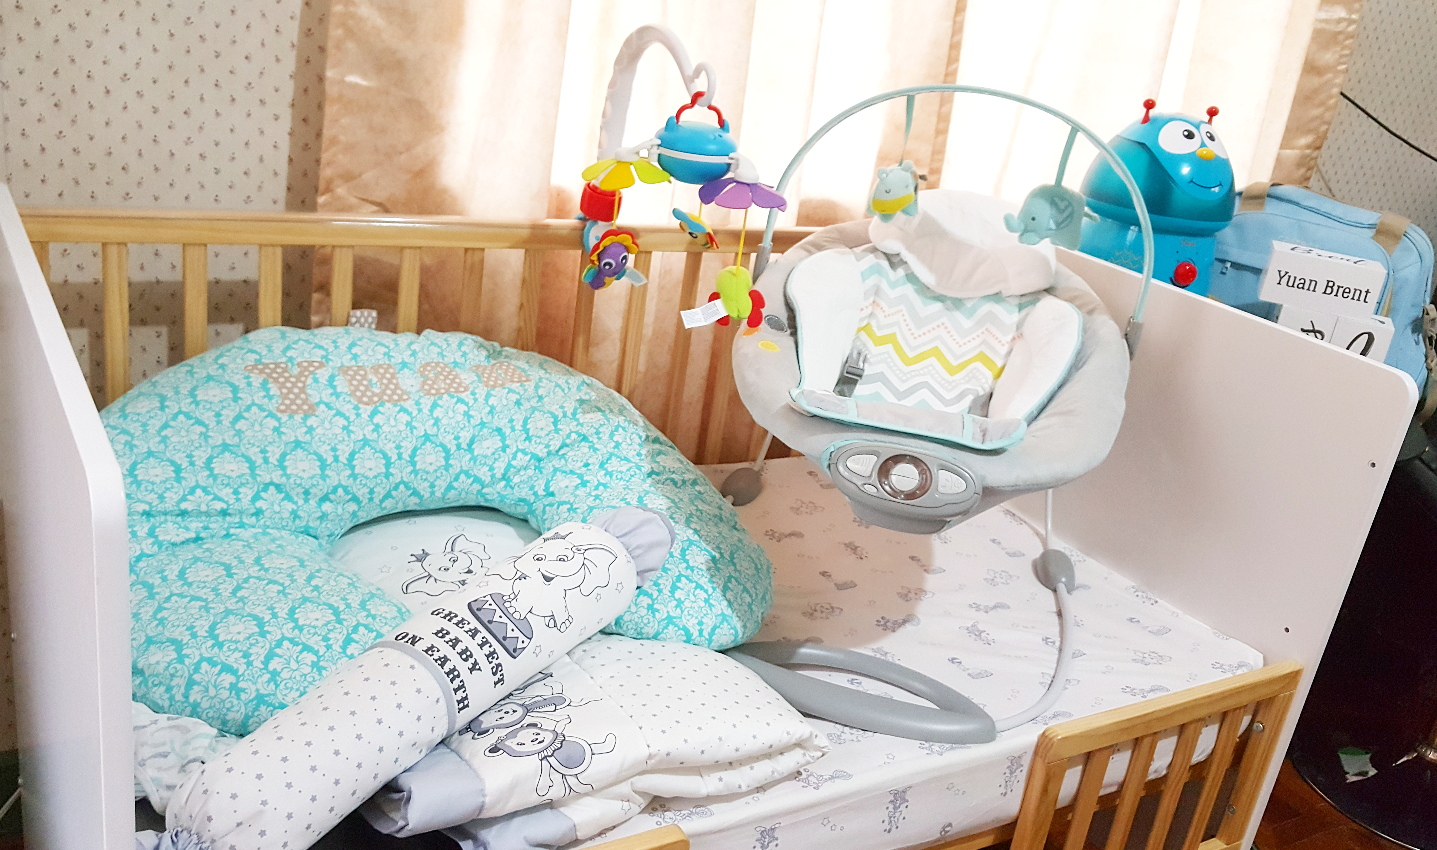 Baby Company's 62nd Store Opening In SM Megamall